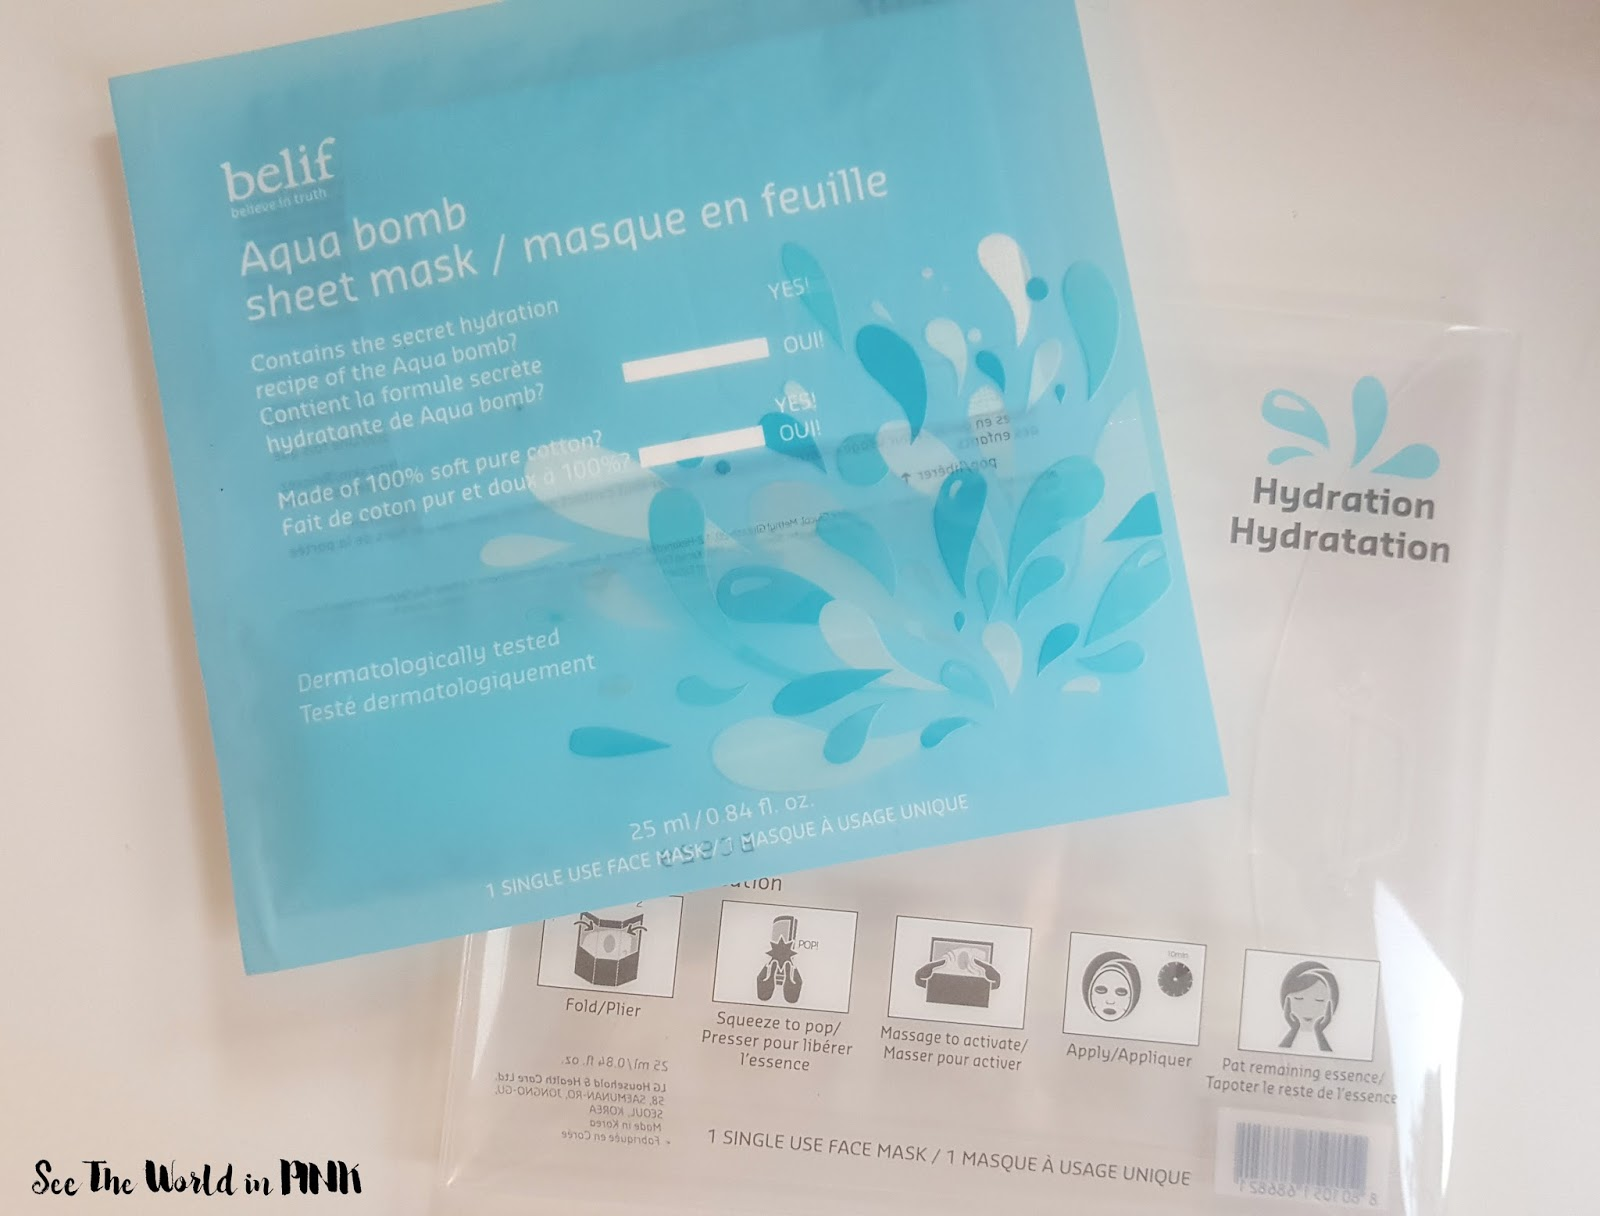 Mask Wednesday - Belif Aqua Bomb Sheet Mask!